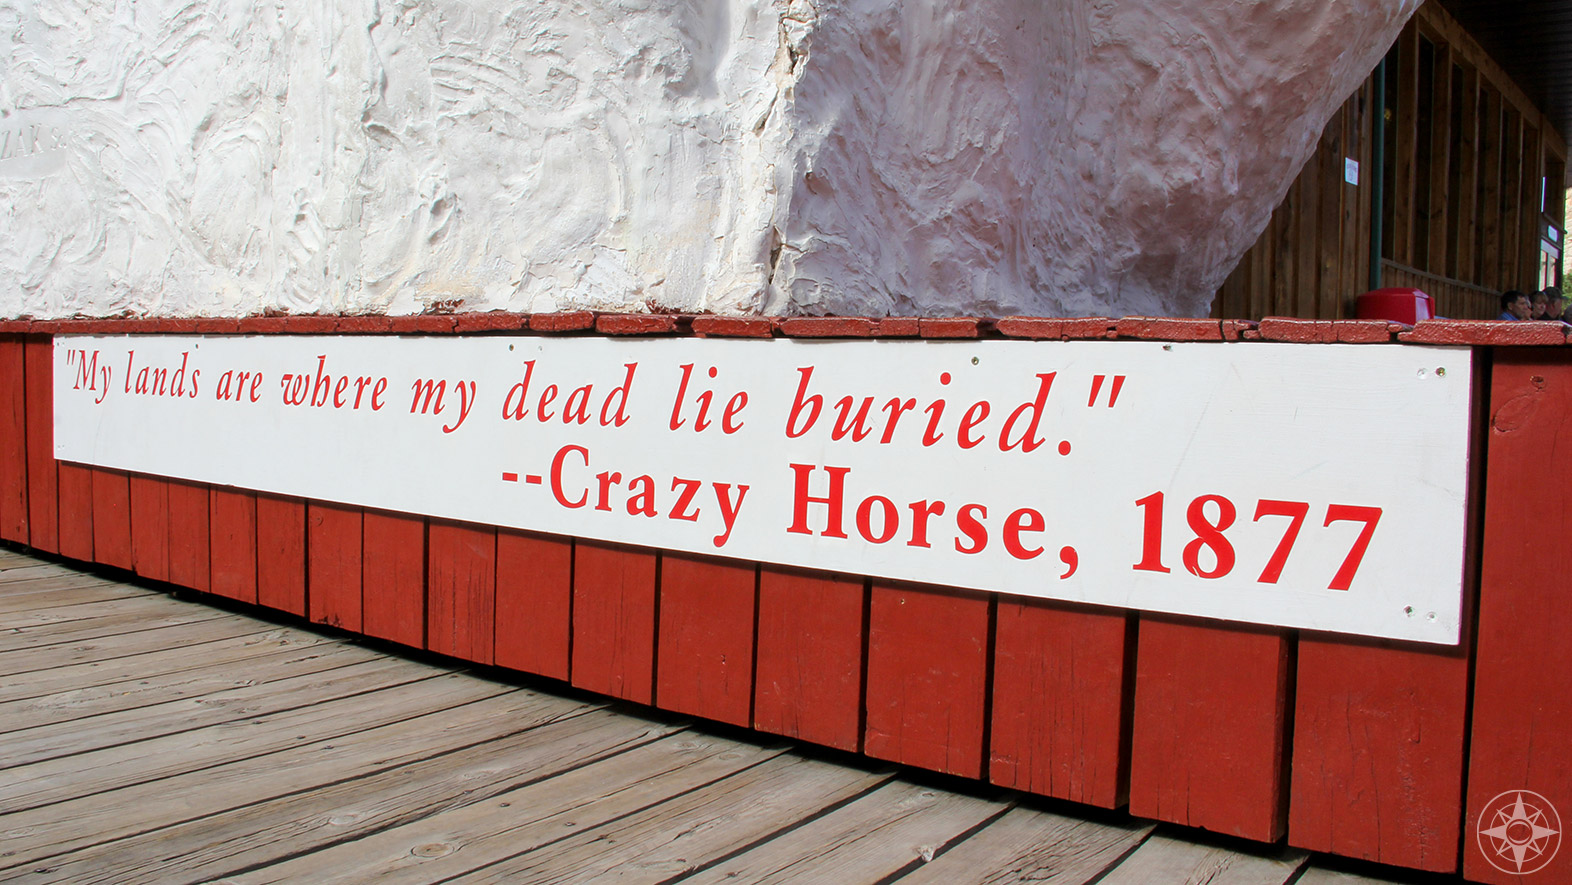 My lands are where my dead are buried. Crazy Horse quote, 1877